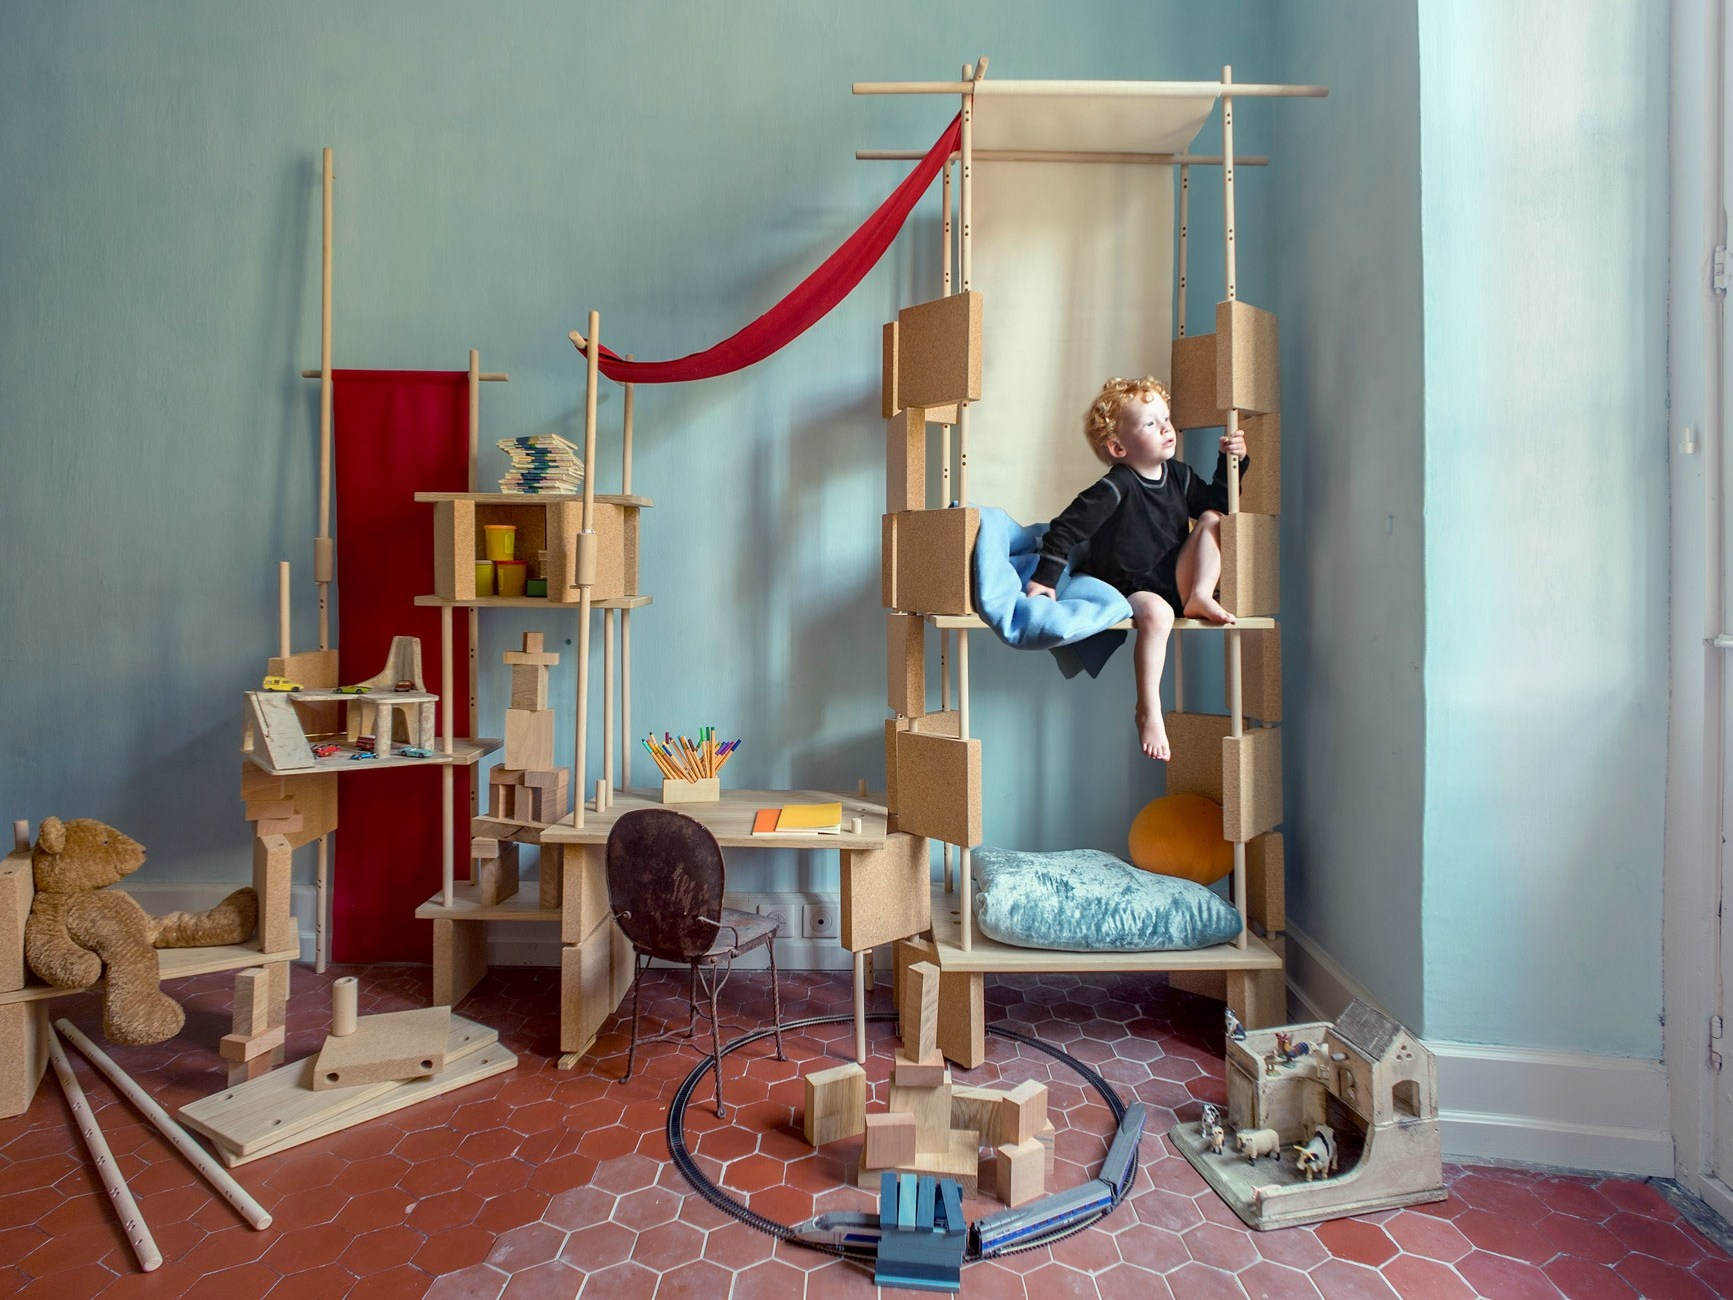 sectional_modular_bookcase_play_yet_-_smarin